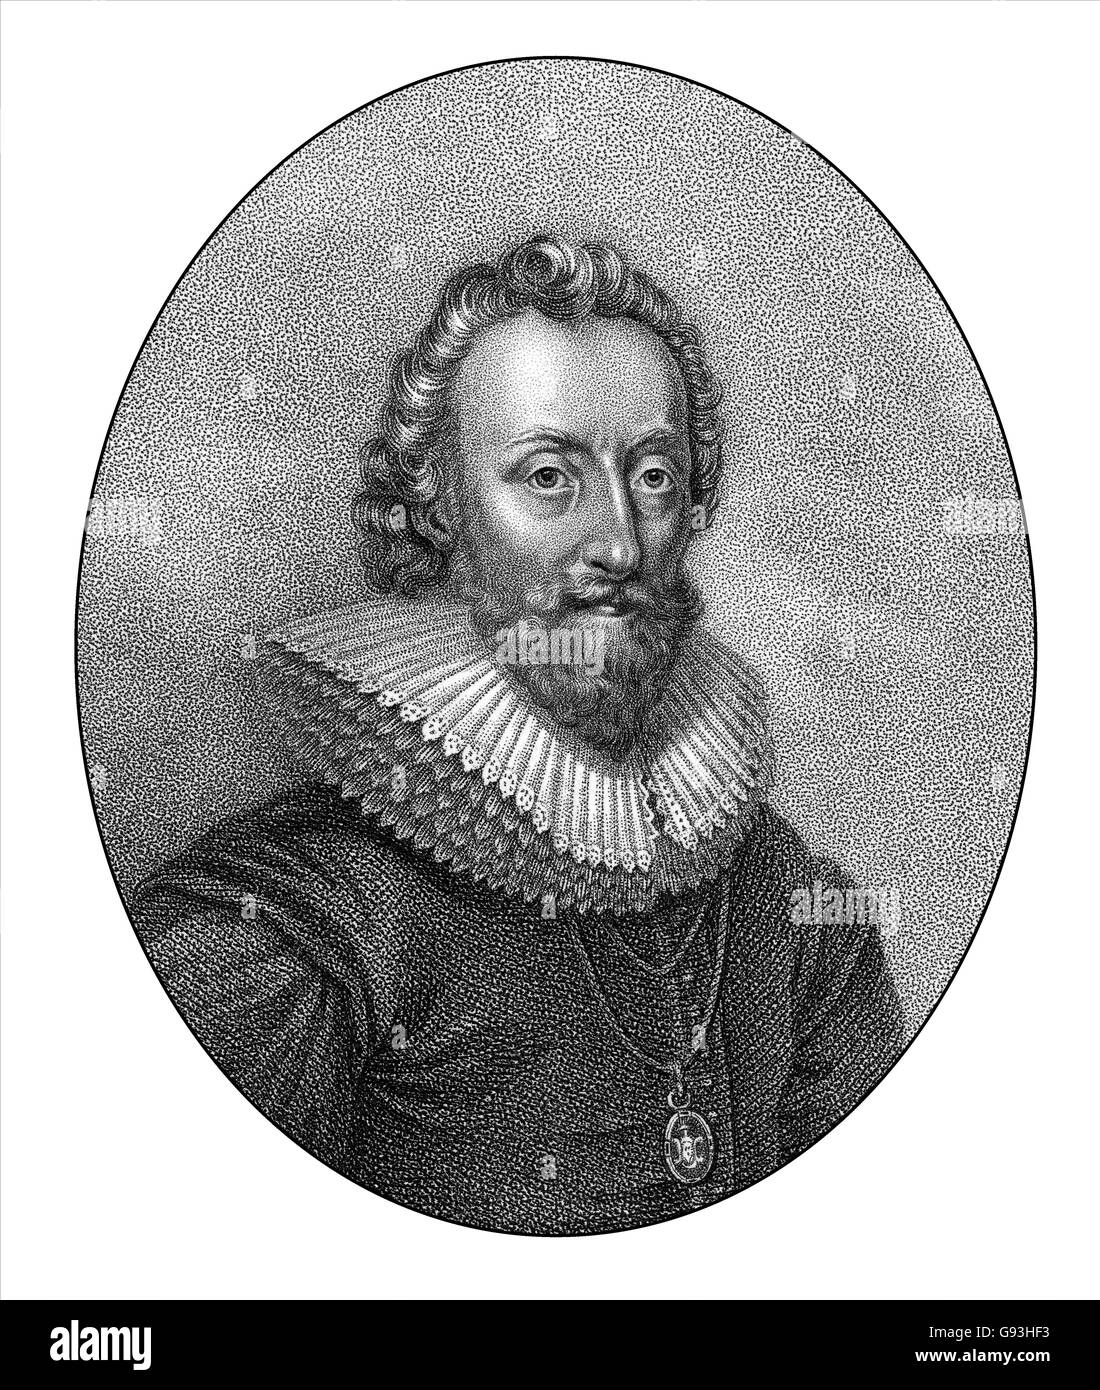 William Alexander, 1st Earl of Stirling, 1567-1640, a Scottish courtier and poet - Stock Image